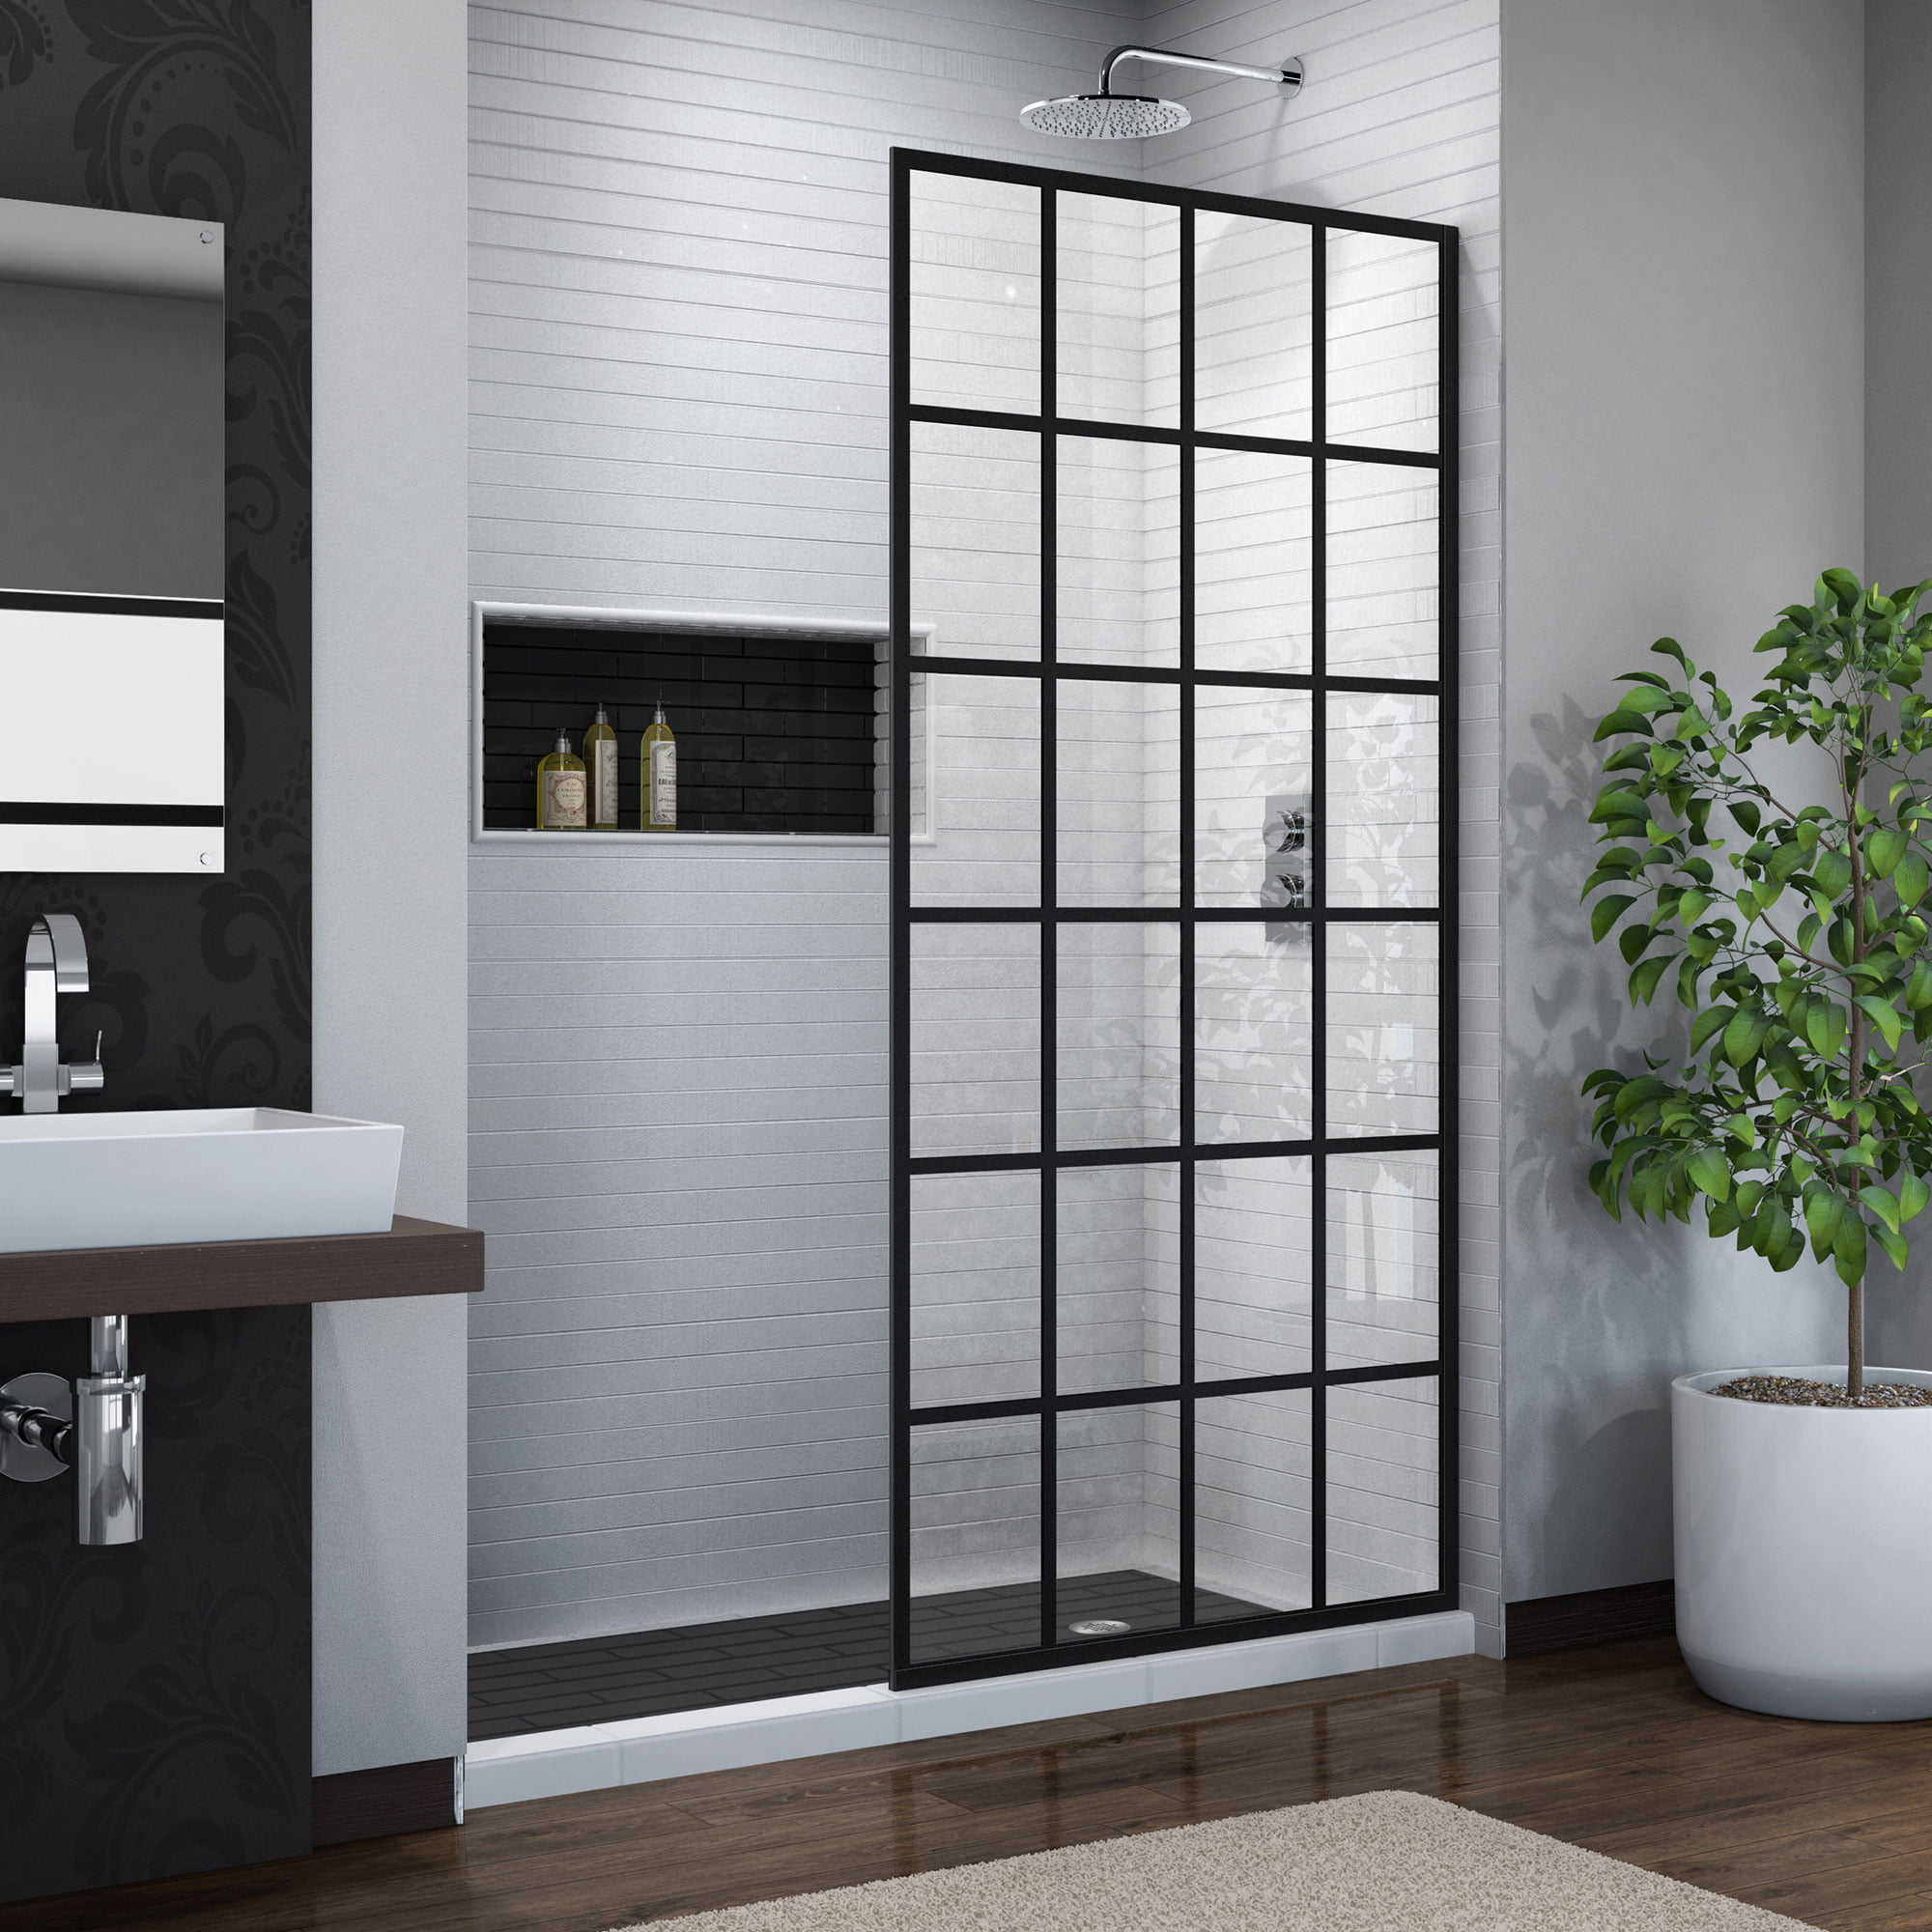 Dreamline French Linea Toulon 34 In W X 72 In H Single Panel Frameless Shower Door Open Entry Design In Satin Black Walmart Com